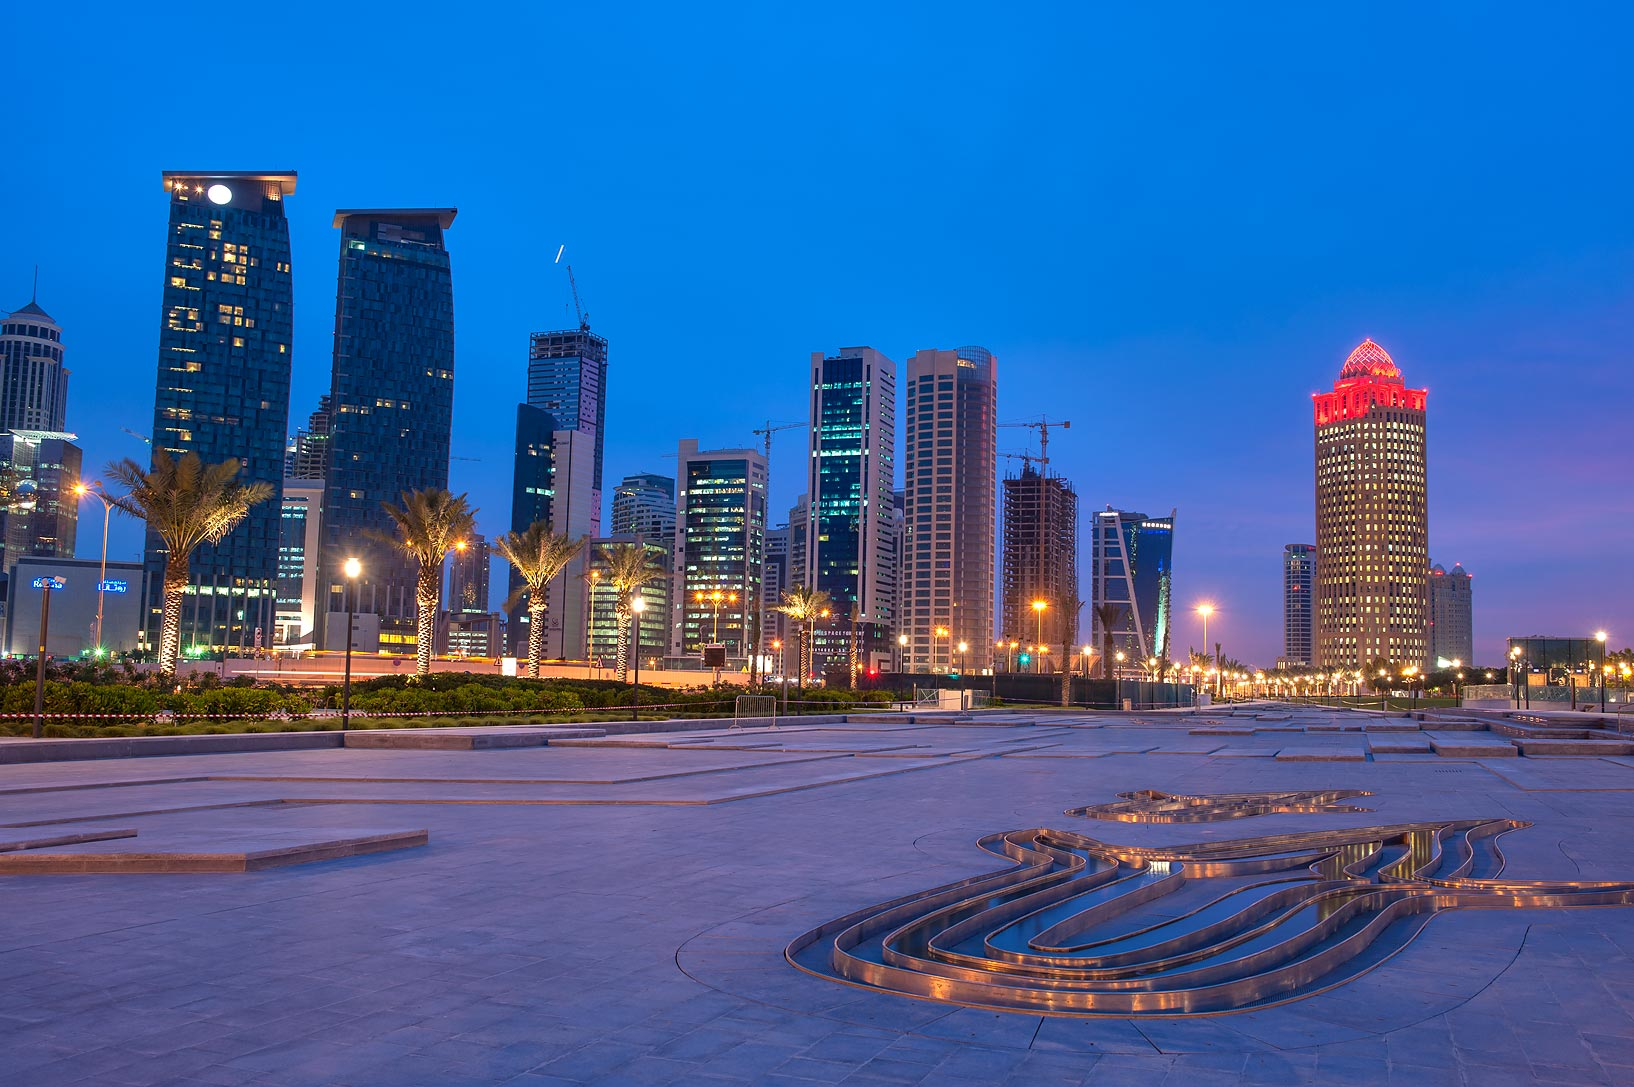 Fountain below Sheraton Hotel at dusk. Doha, Qatar